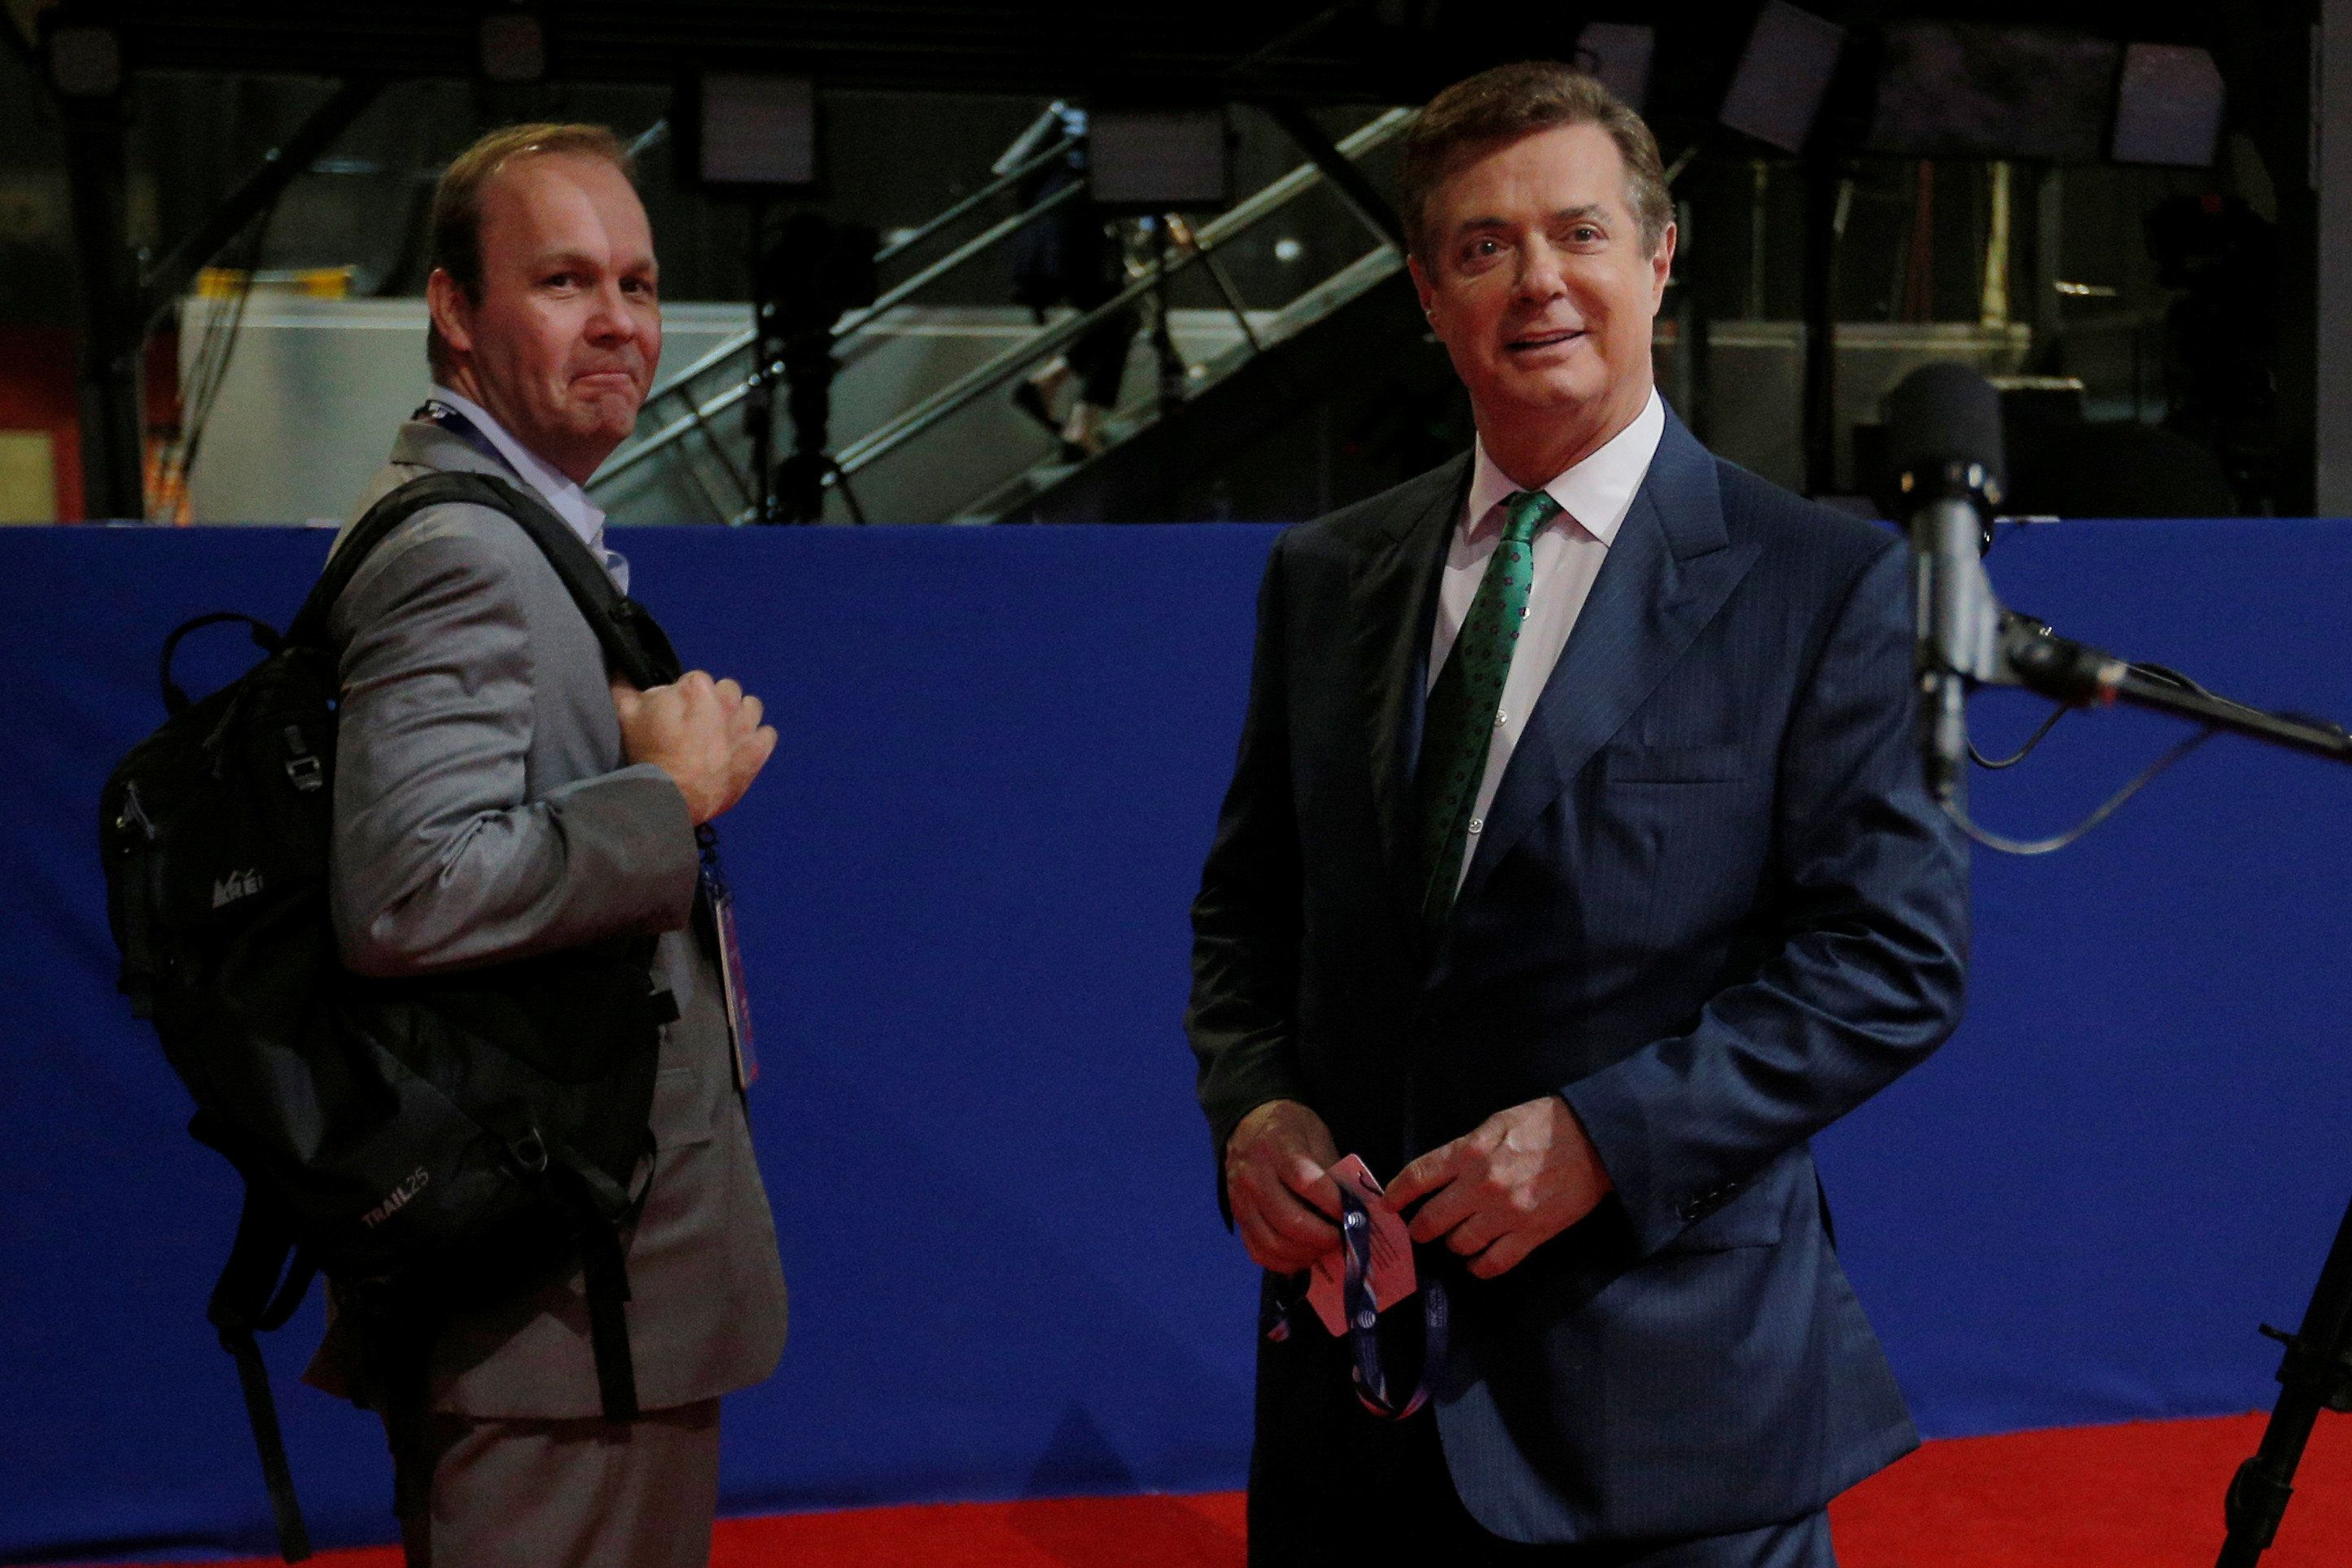 Paul Manafort (R), campaign manager to Republican Presidential Candidate Donald Trump, and his assistant Rick Gates stand on the floor of the Republican National Convention in Cleveland, Ohio, U.S. July 17, 2016.   Picture taken July 17, 2016.  REUTERS/Brian Snyder